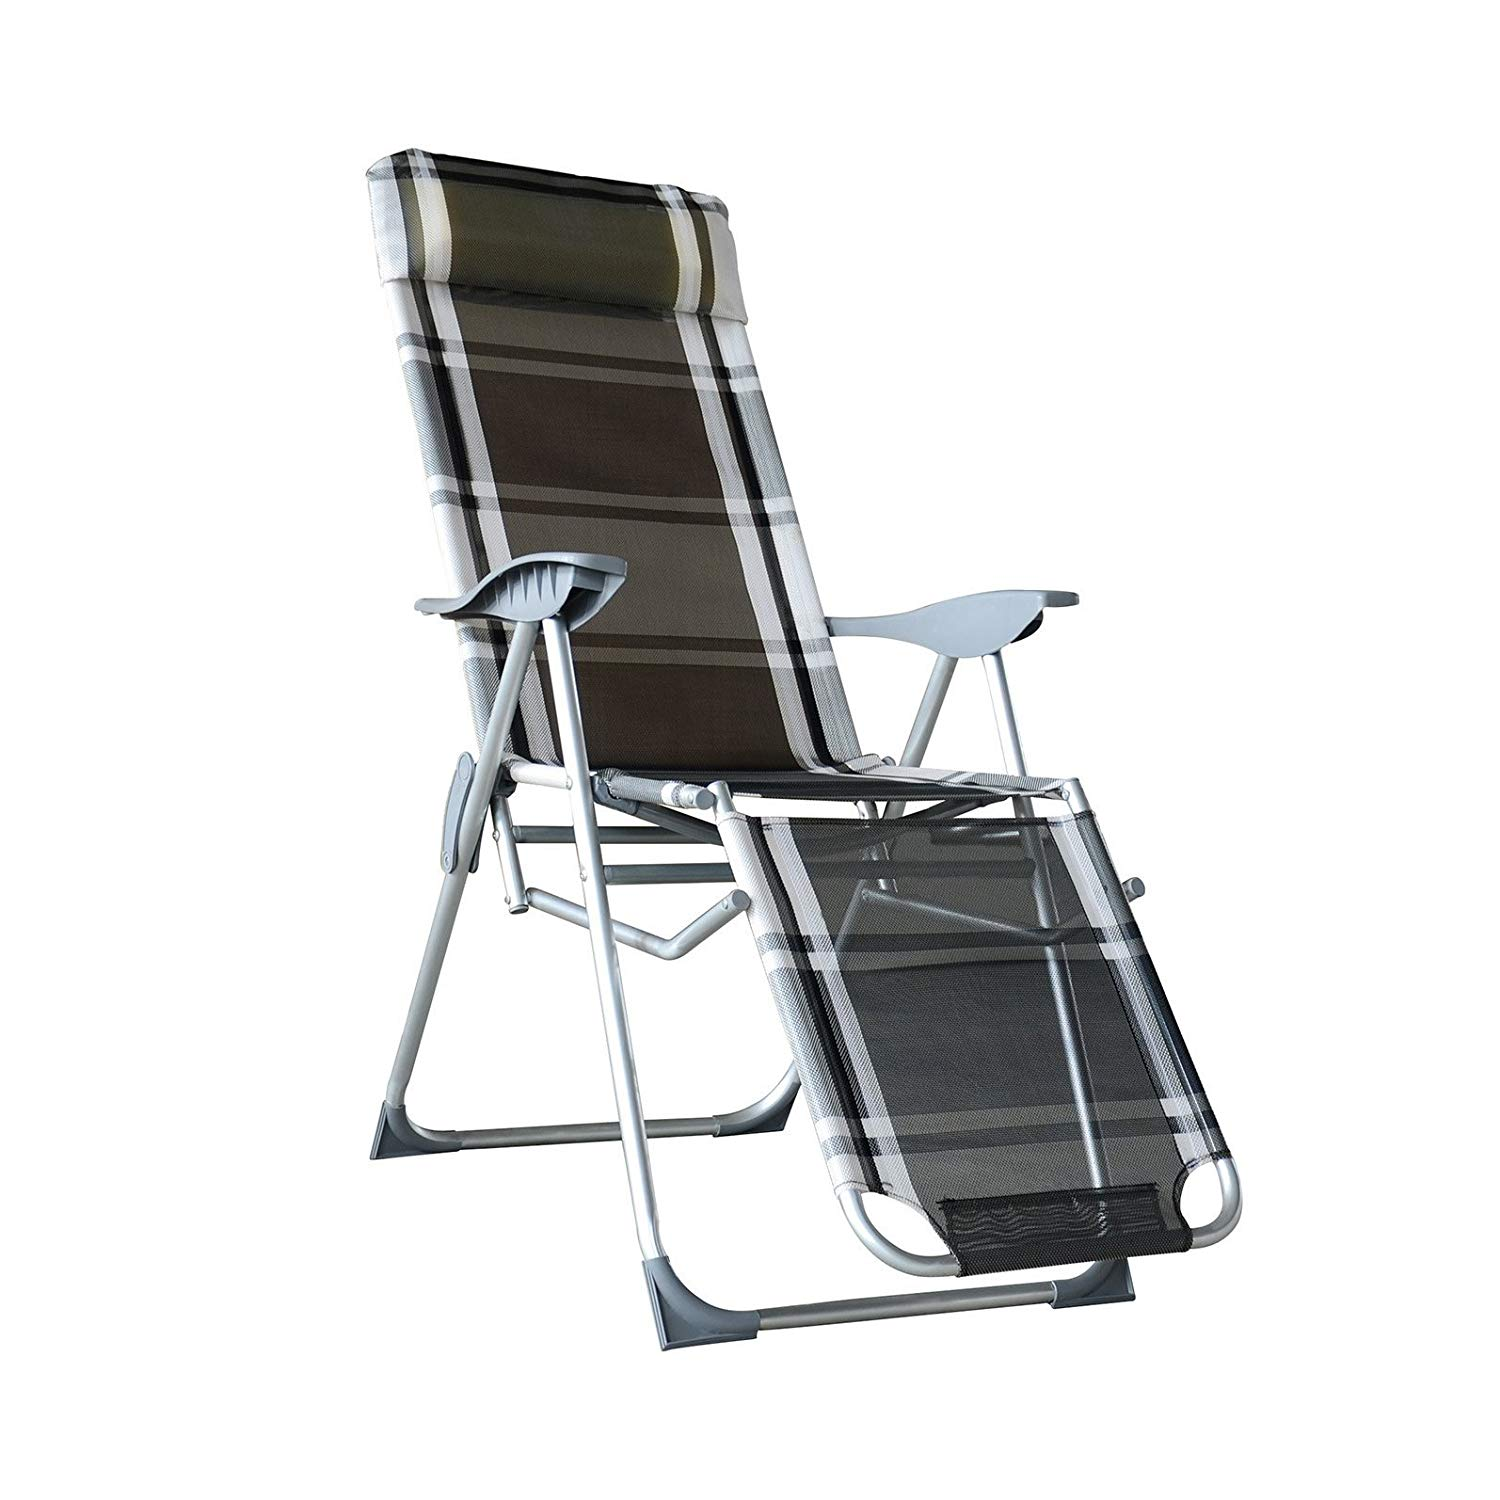 Gravity Lounge Chair Orno Ttobe Zero Gravity Lounge Chair Recliners For Patio Pool Adjustable